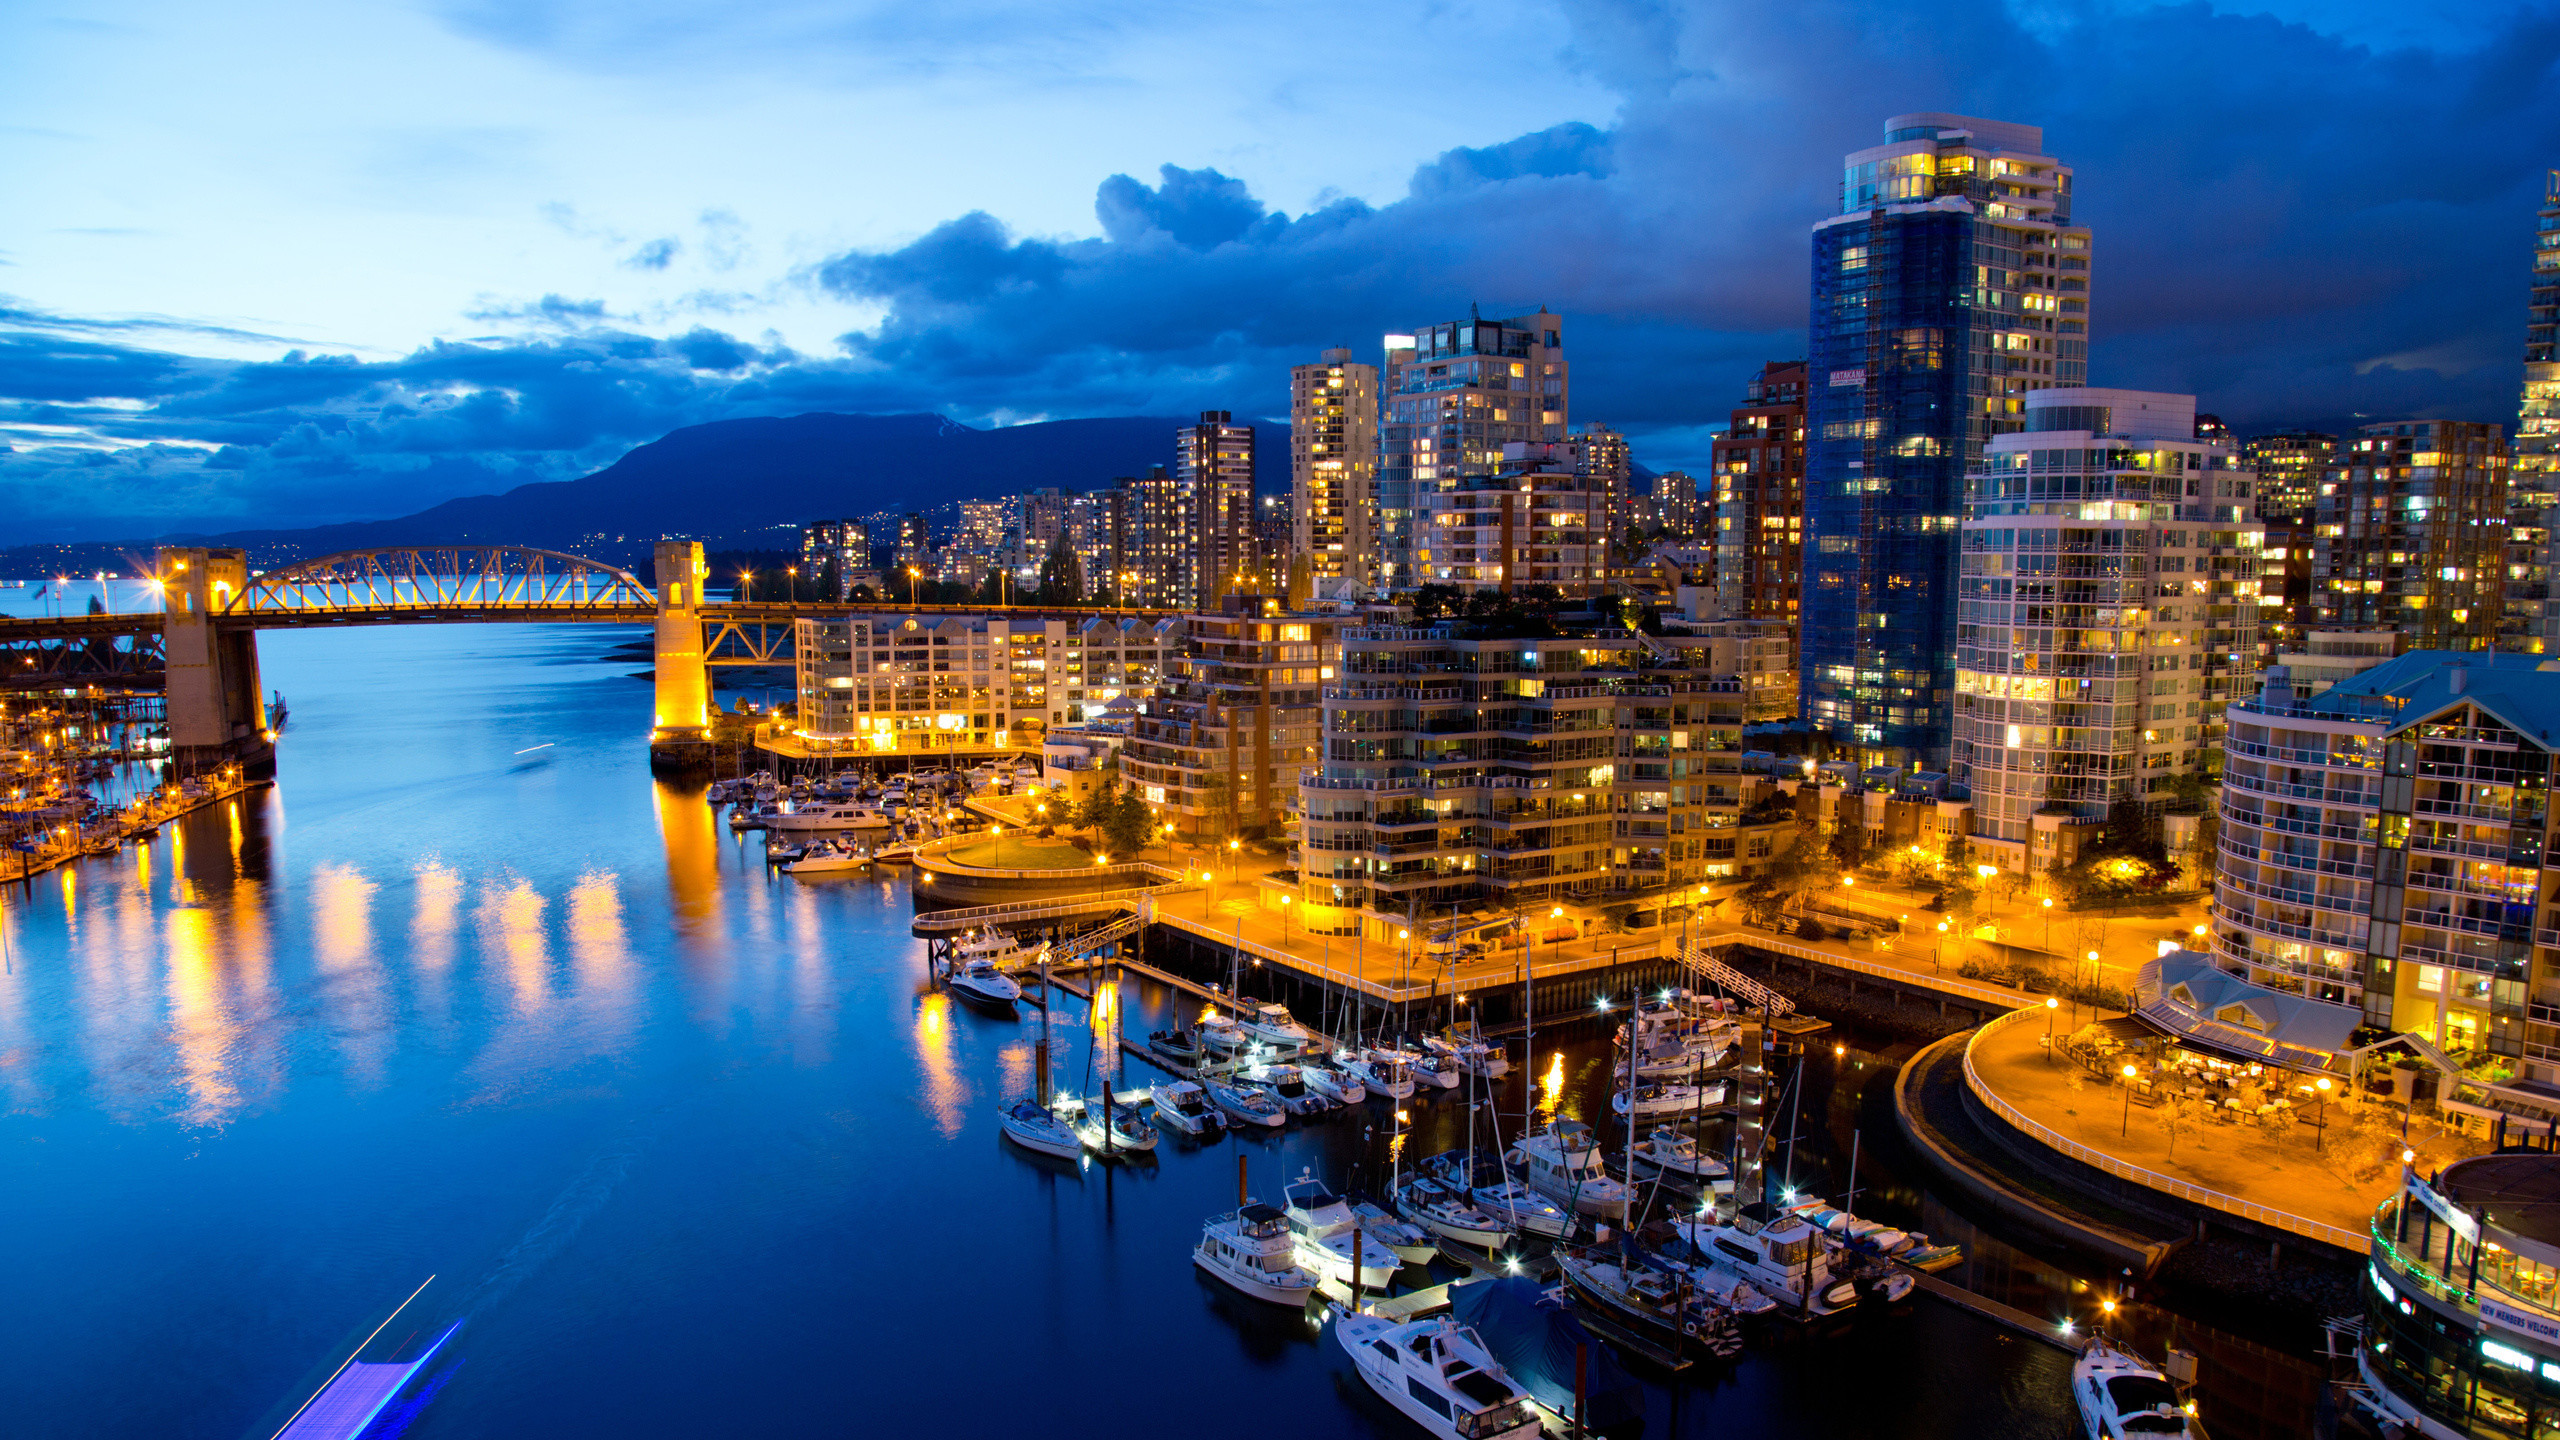 2560x1440 Skyline, Reflection, Capital City, Urban Area, Vancouver Wallpaper in   Resolution